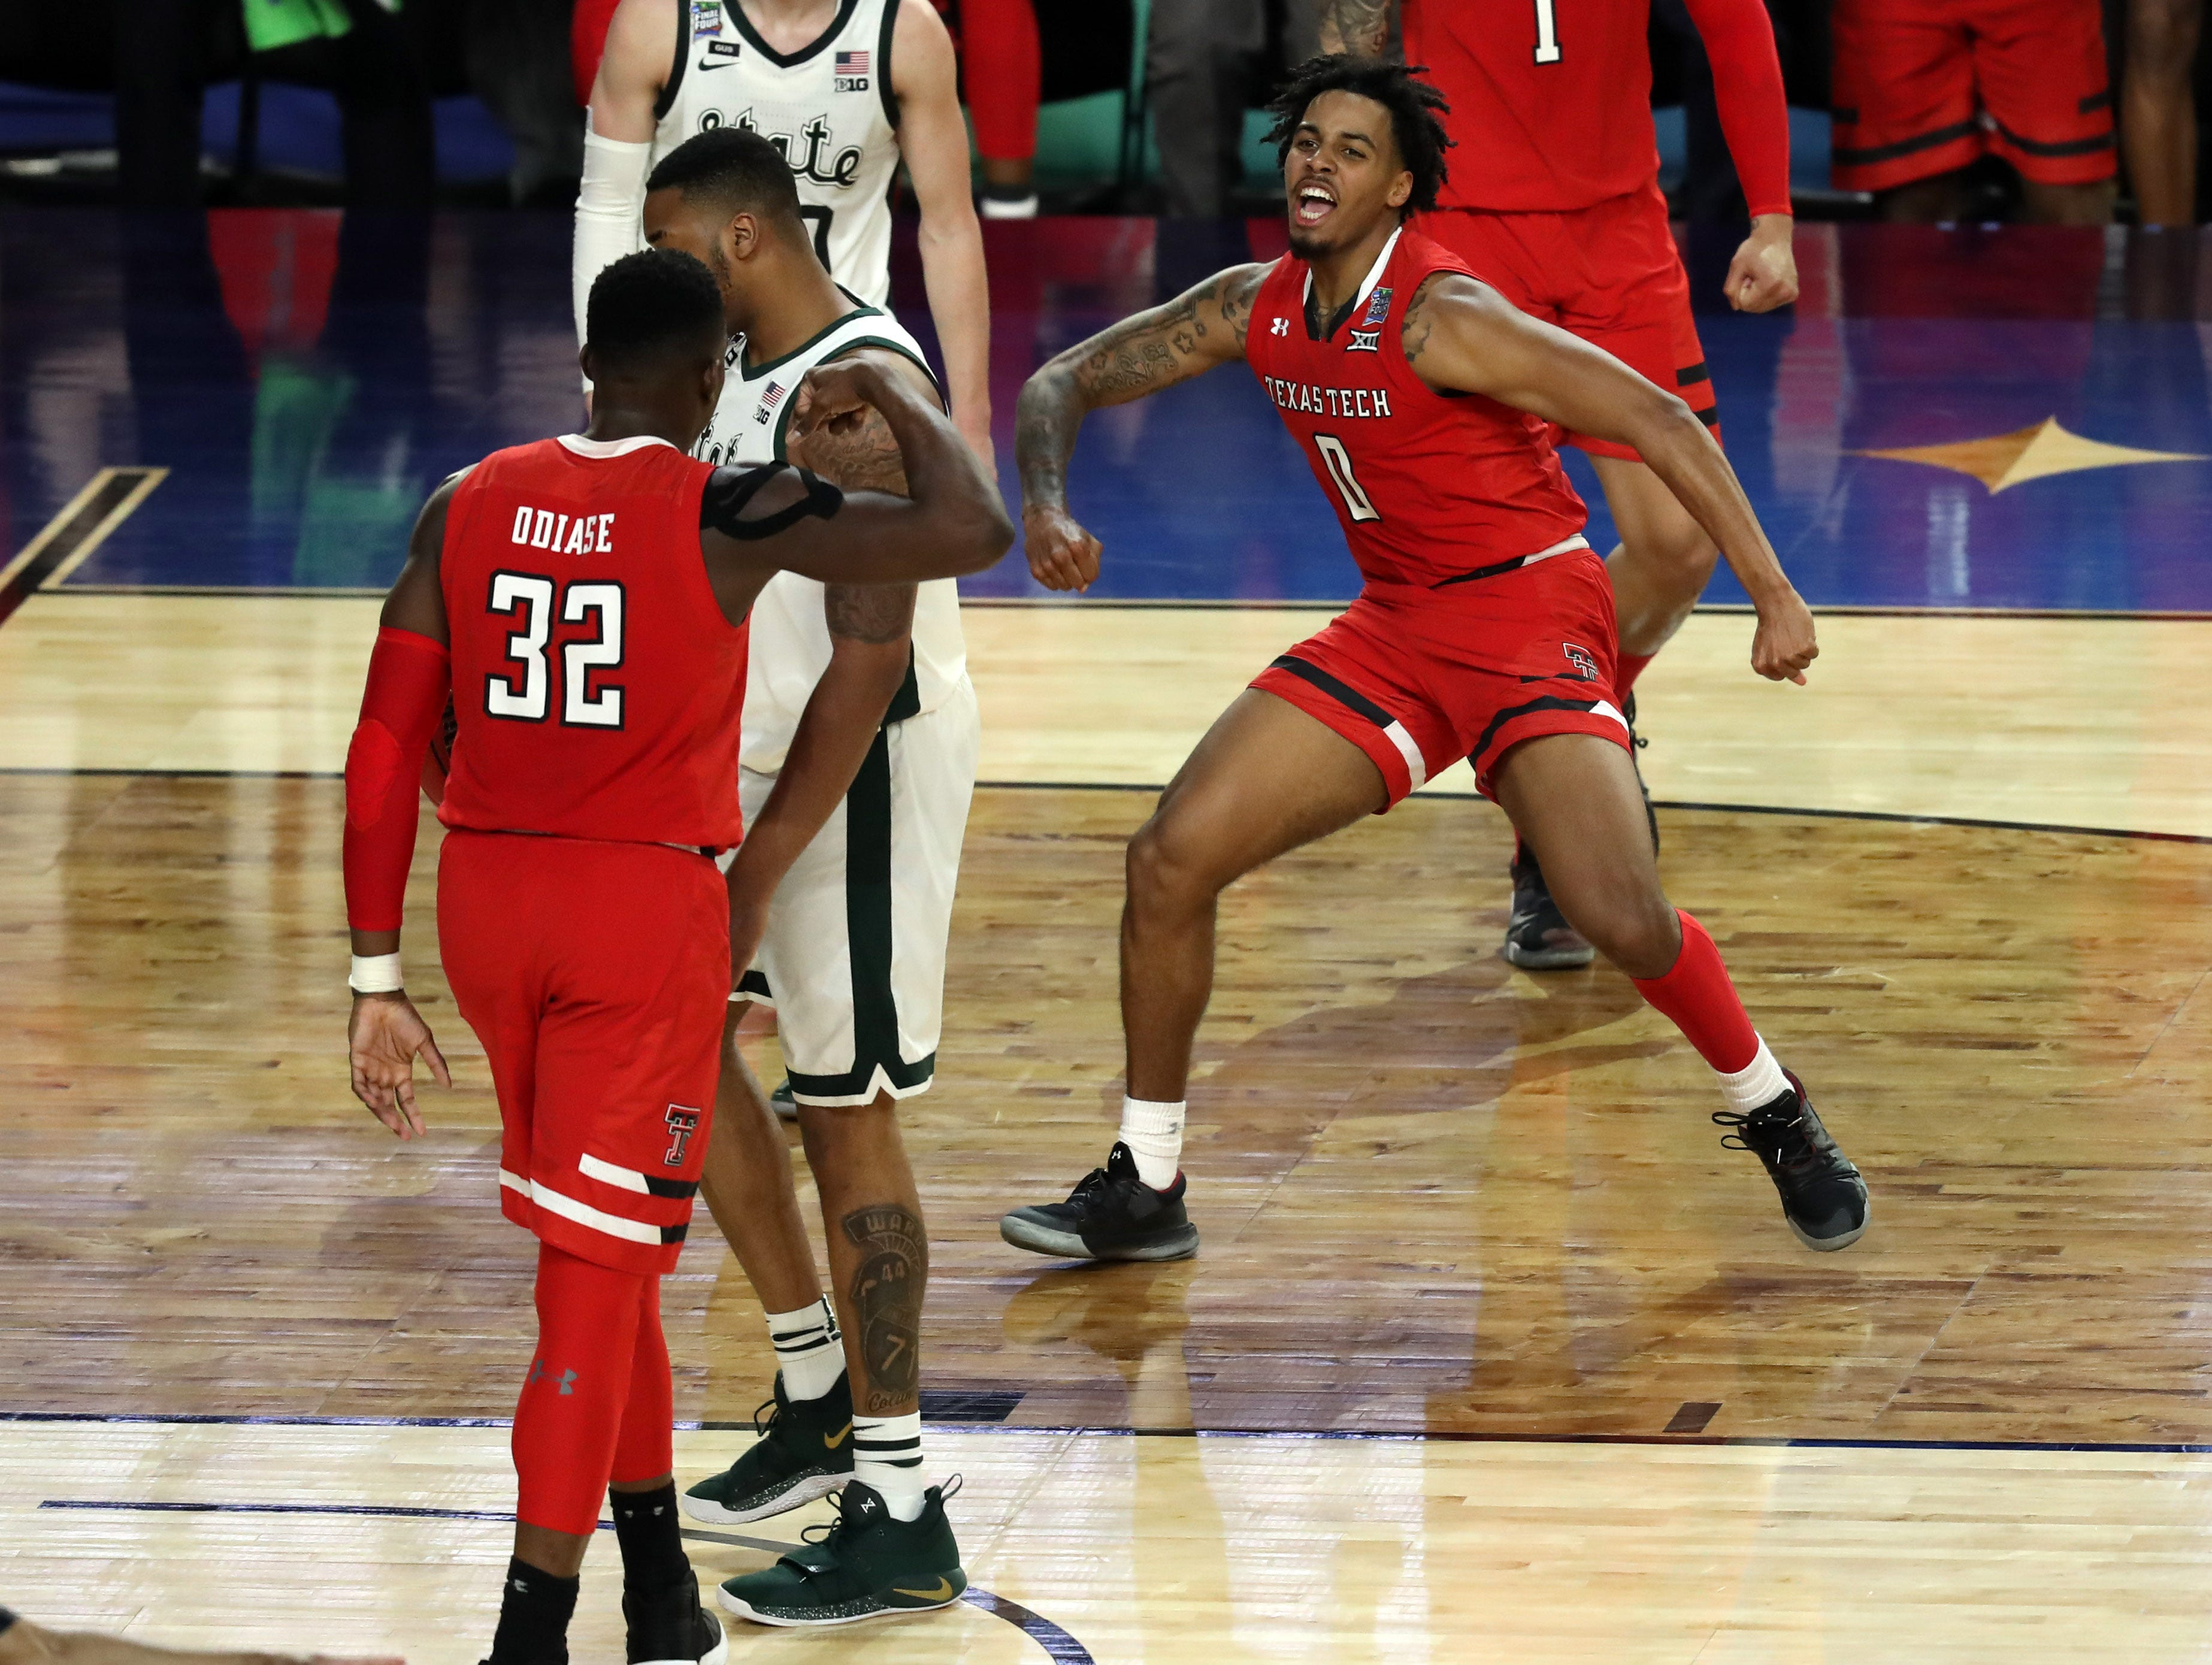 Texas Tech Red Raiders guard Kyler Edwards (0) celebrates after drawing a foul during the second half against the Michigan State Spartans.